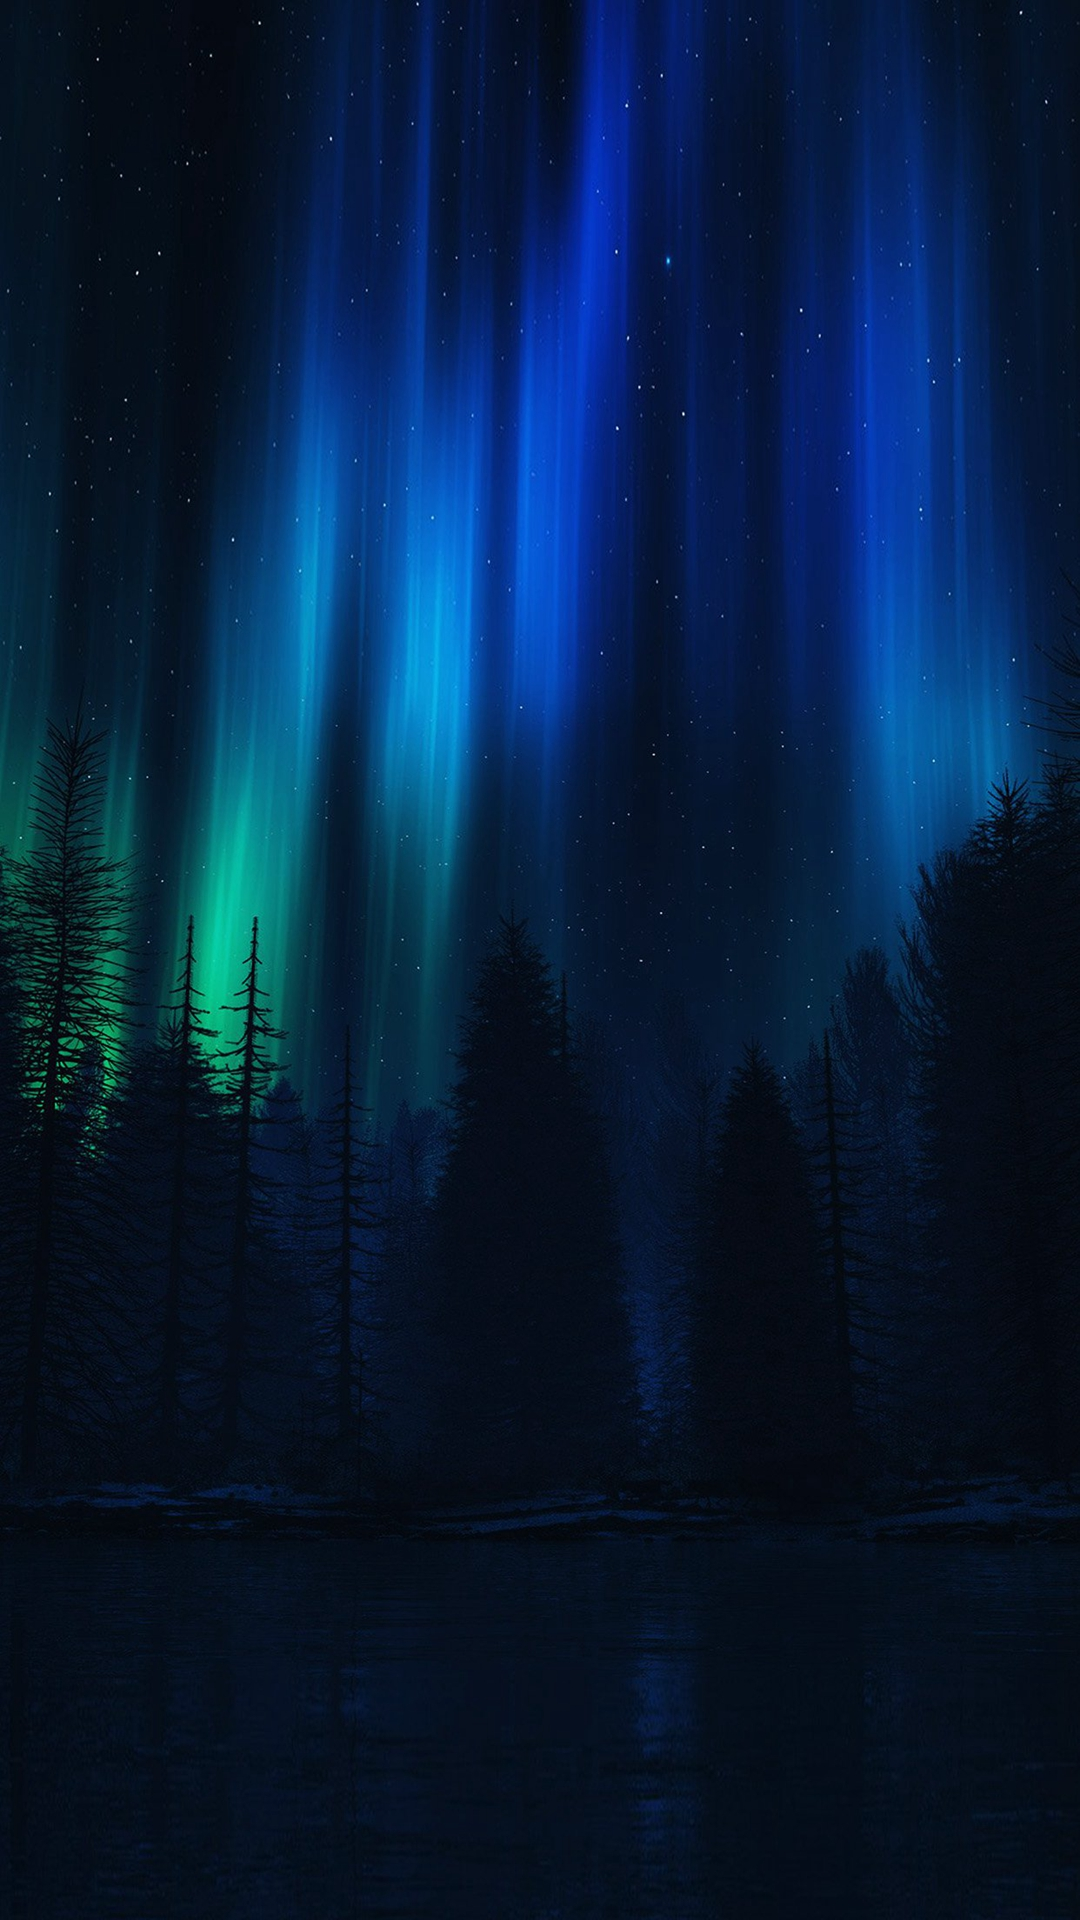 Aurora Night Sky Dark Blue Nature Art Iphone 6 Wallpaper Ilikewallpaper Com